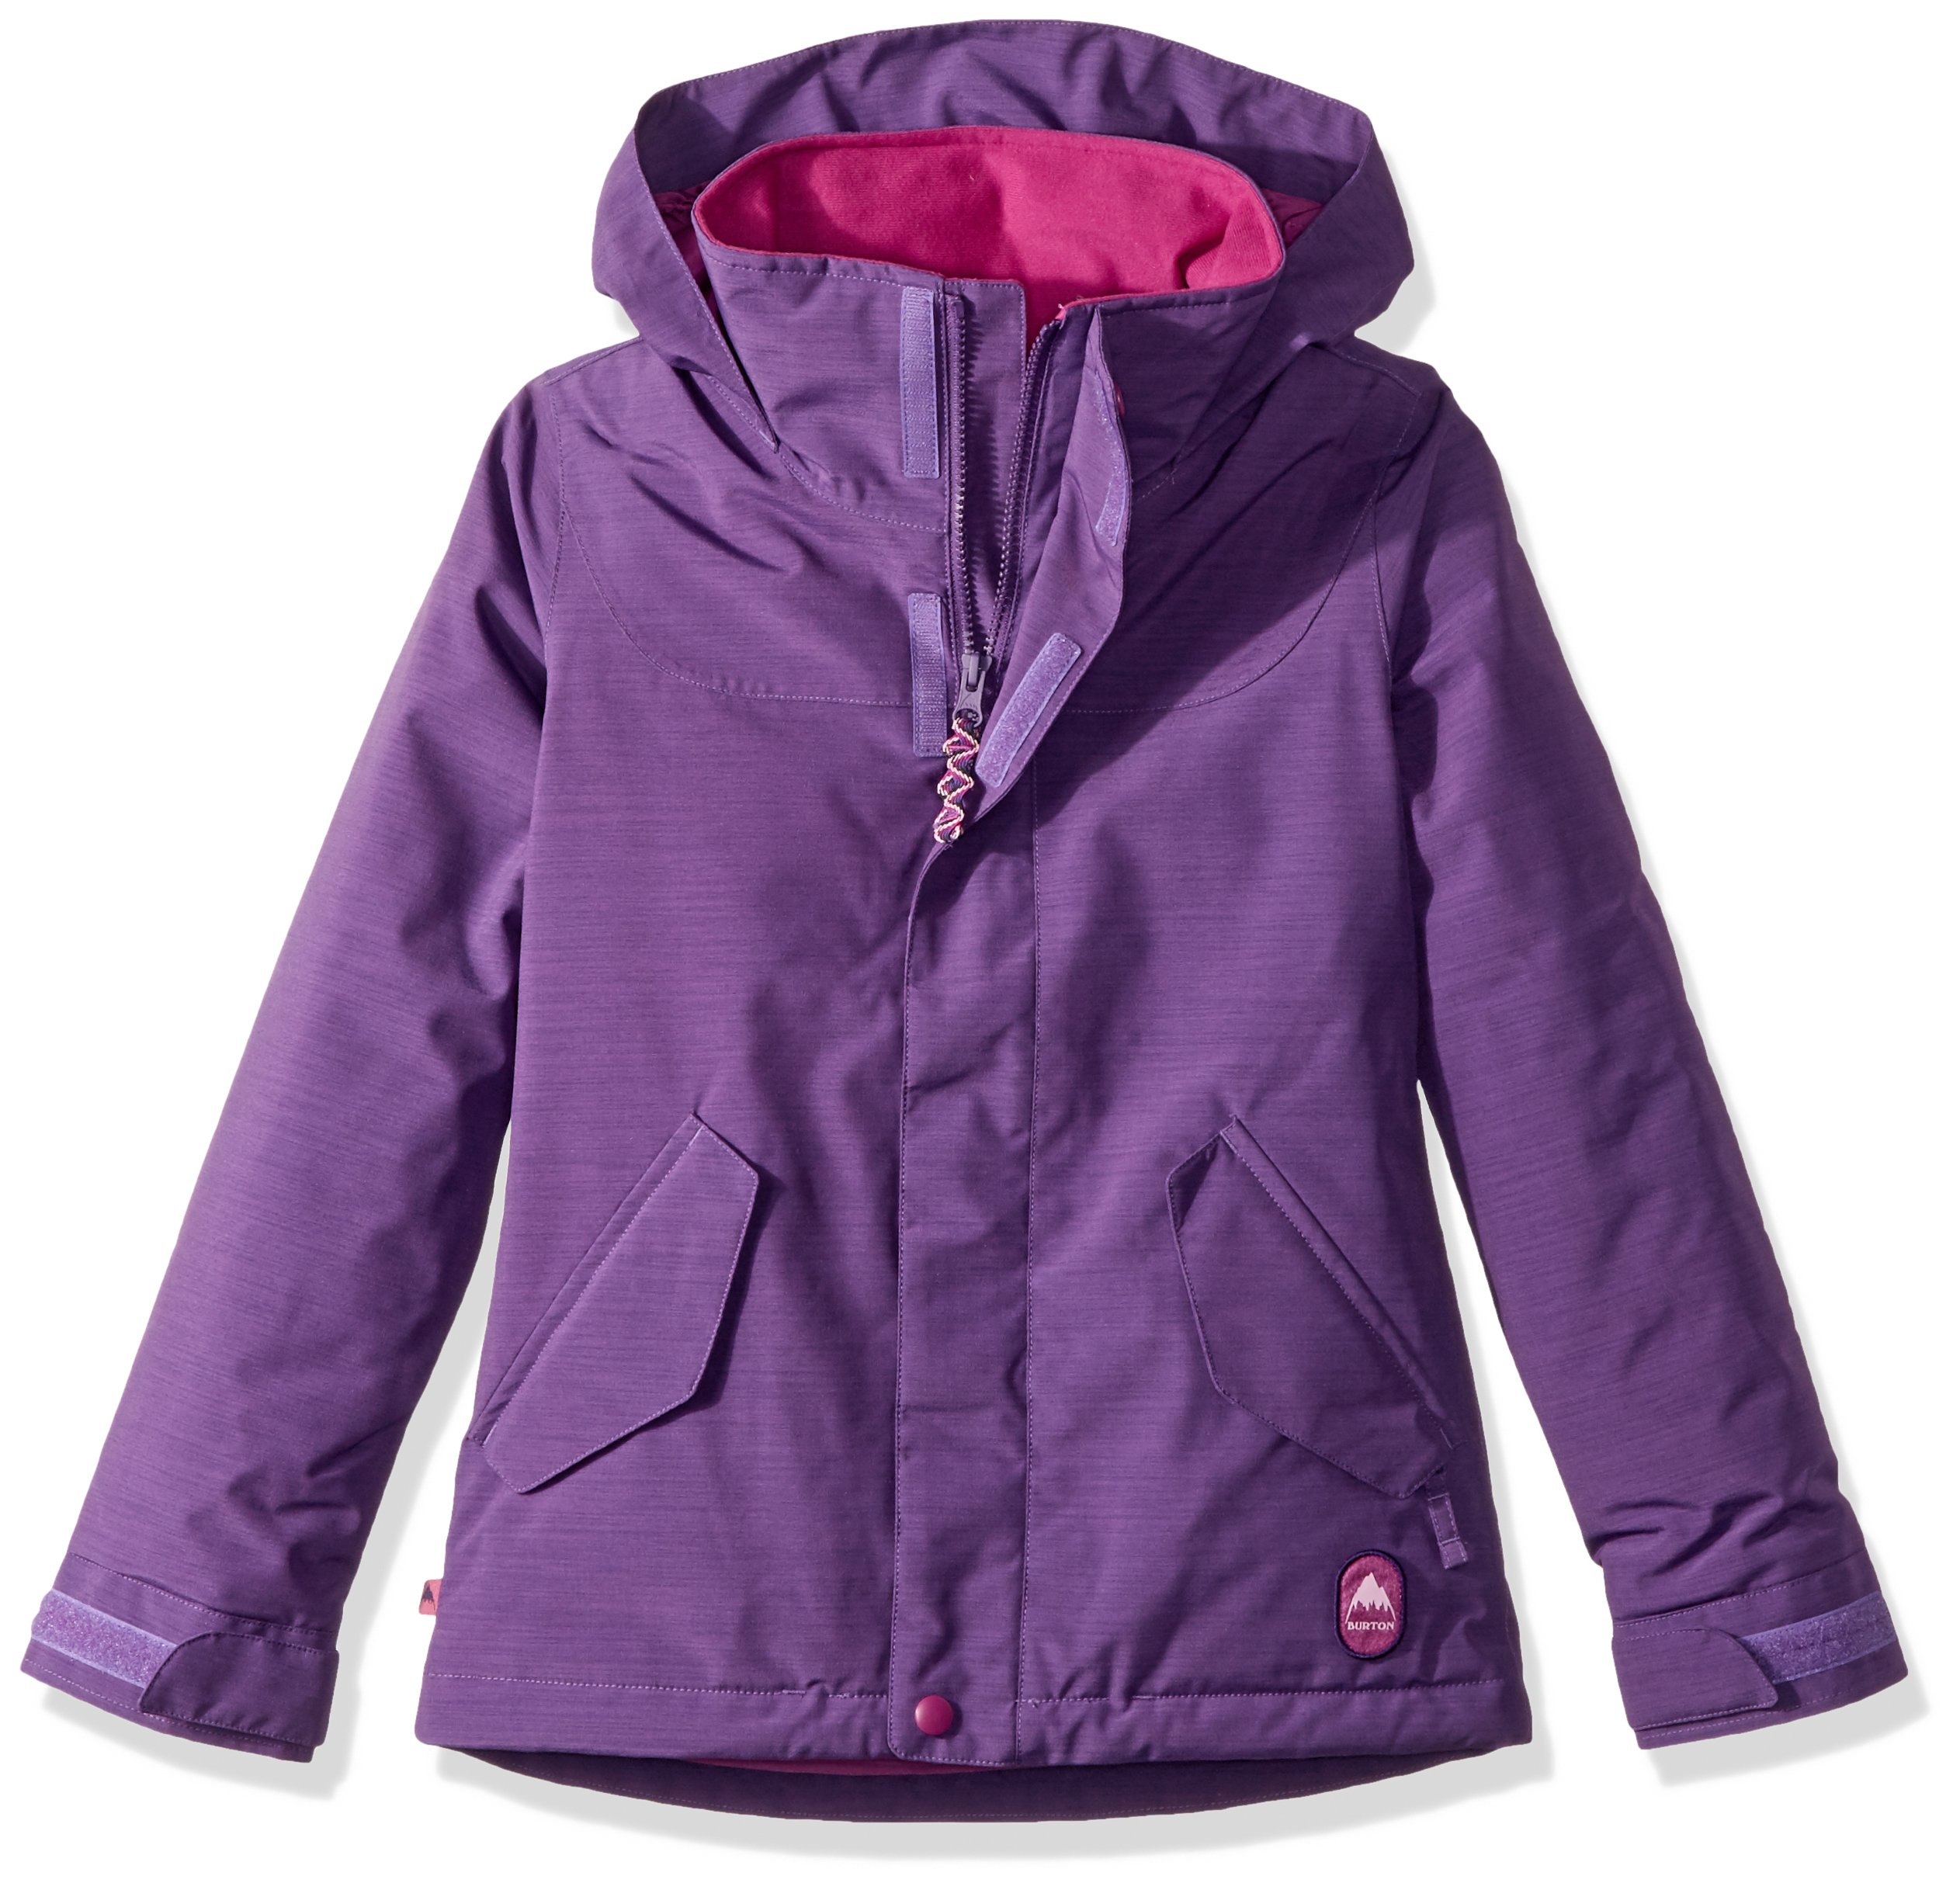 Burton Youth Girls Elodie Jacket, Petunia, X-Small by Burton